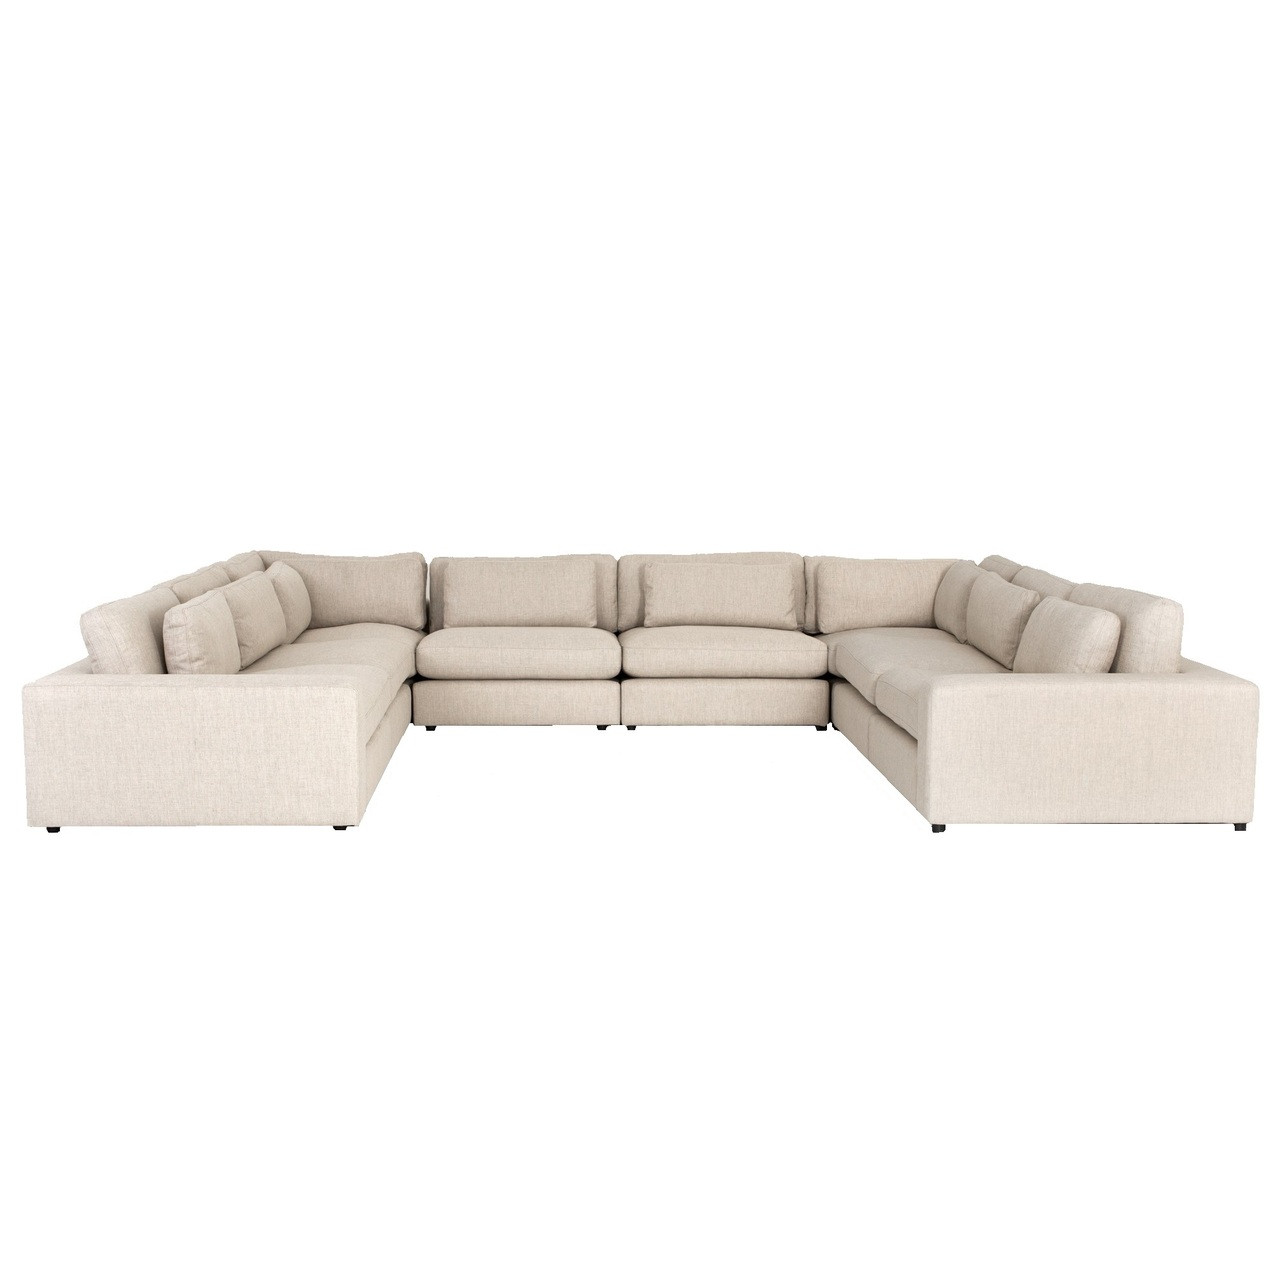 U Sofa Bloor Contemporary Beige Linen 8 Piece U Shaped Sectional Sofa